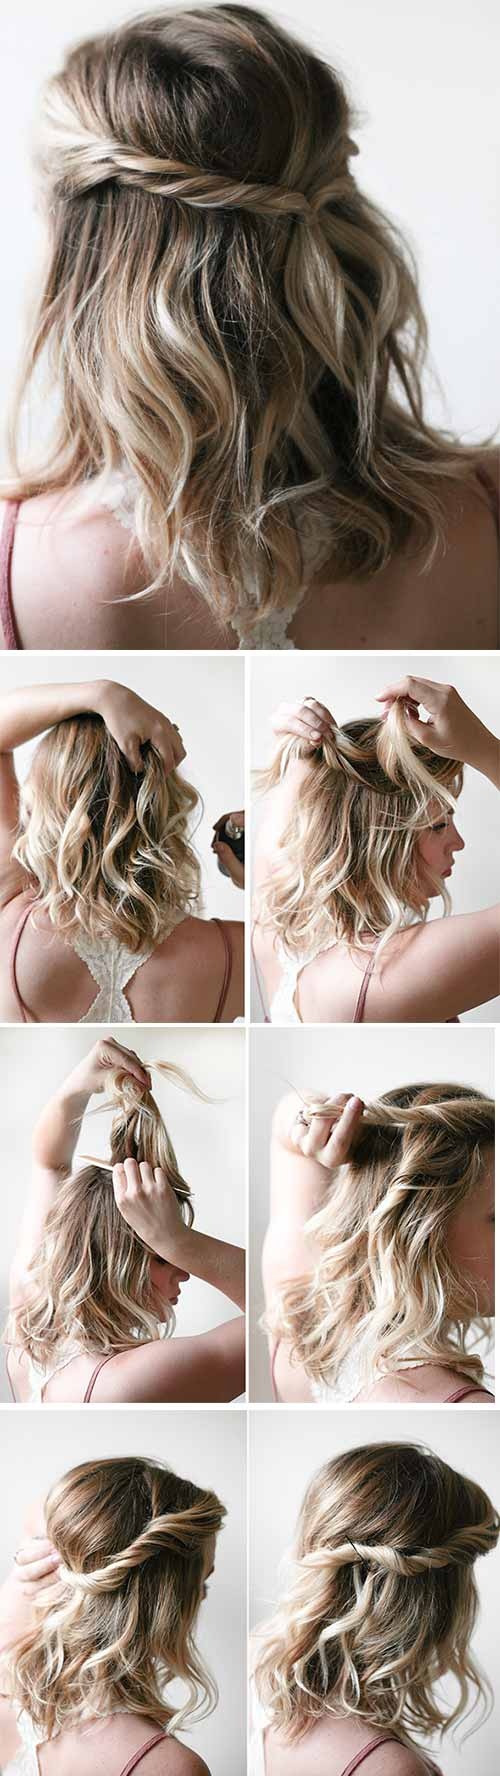 The Easy Twist Hairdo